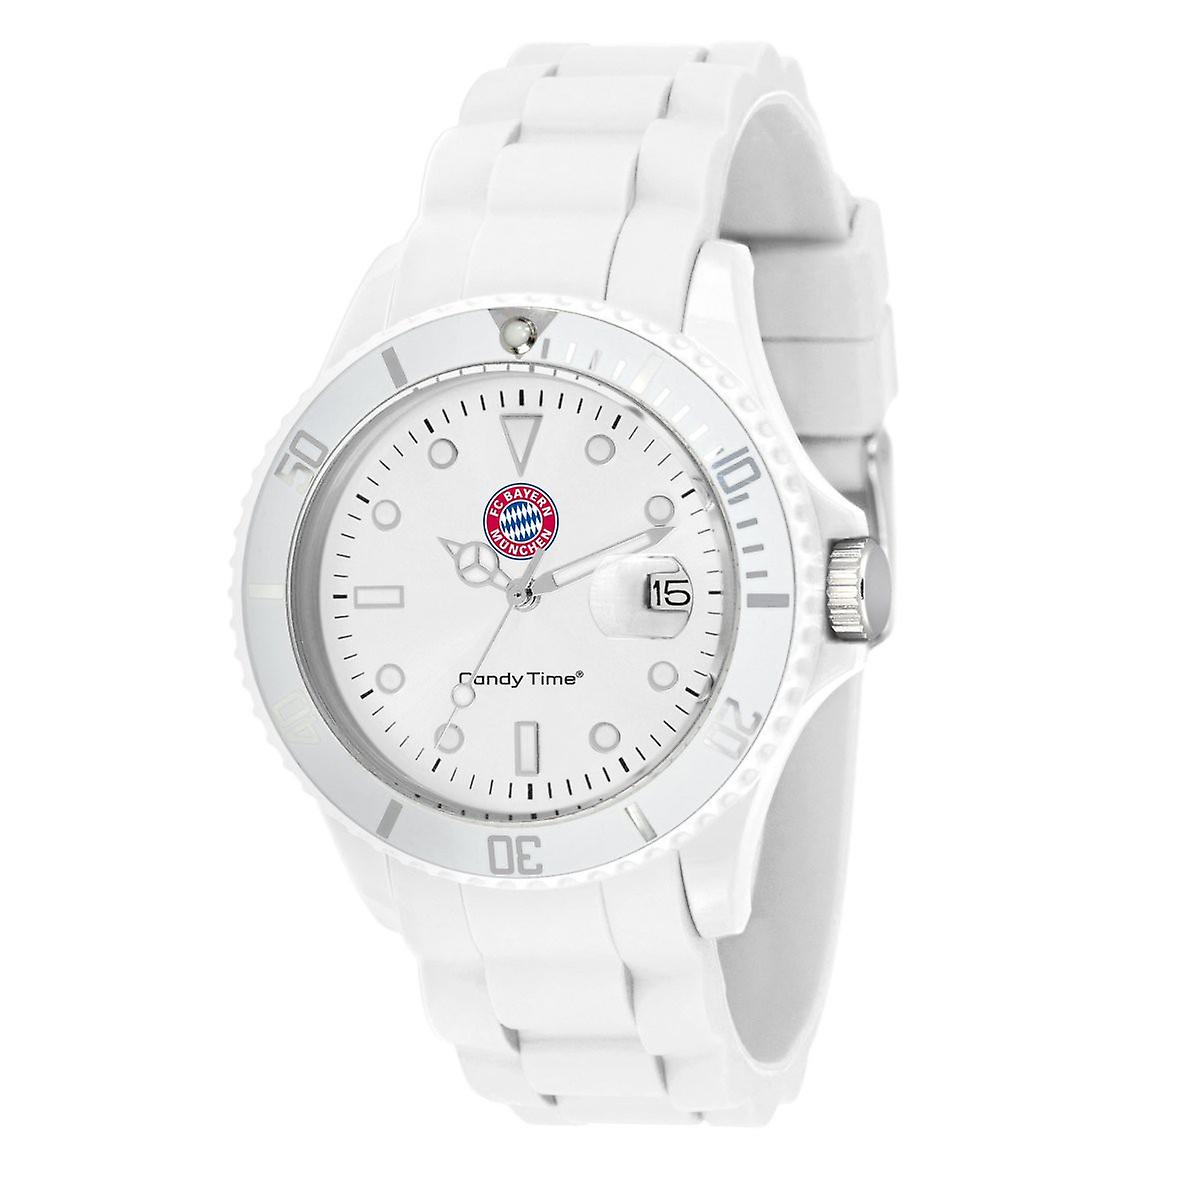 Candy time by Madison watch sailor medium U4167/1FCB FC Bayern Munich